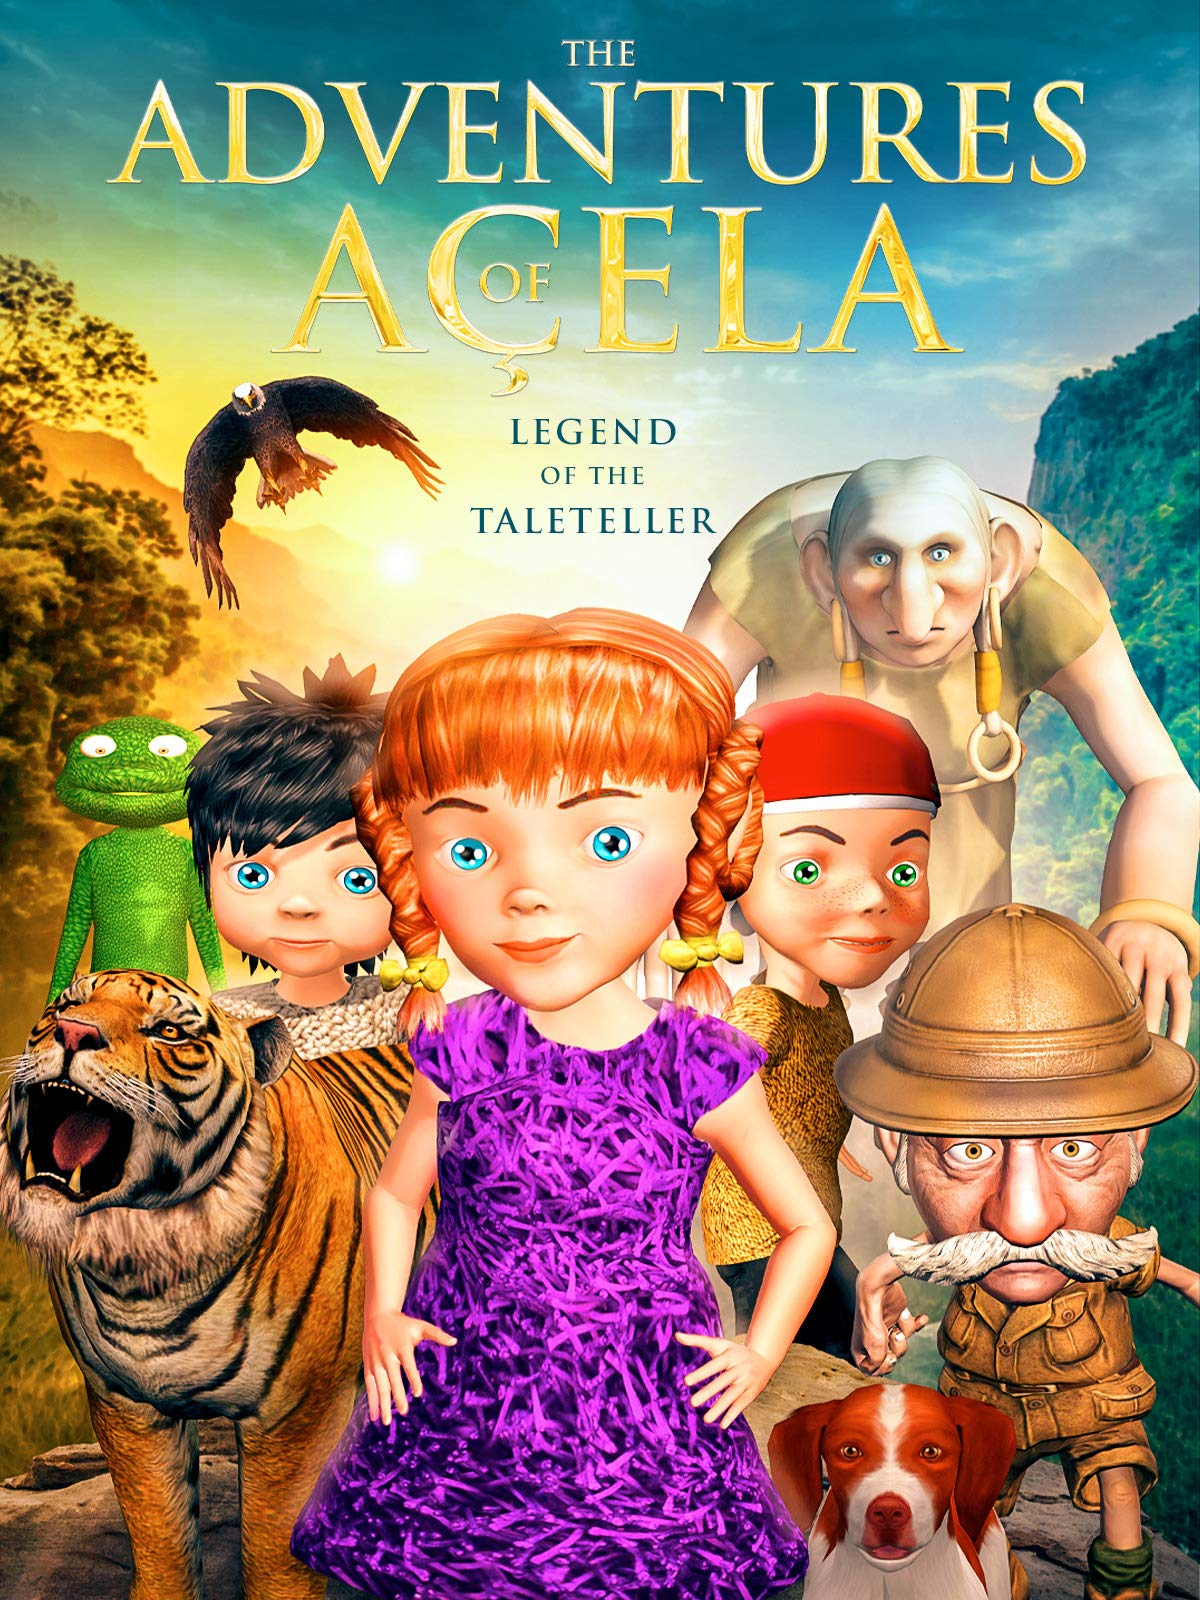 The Adventures of Açela on Amazon Prime Video UK